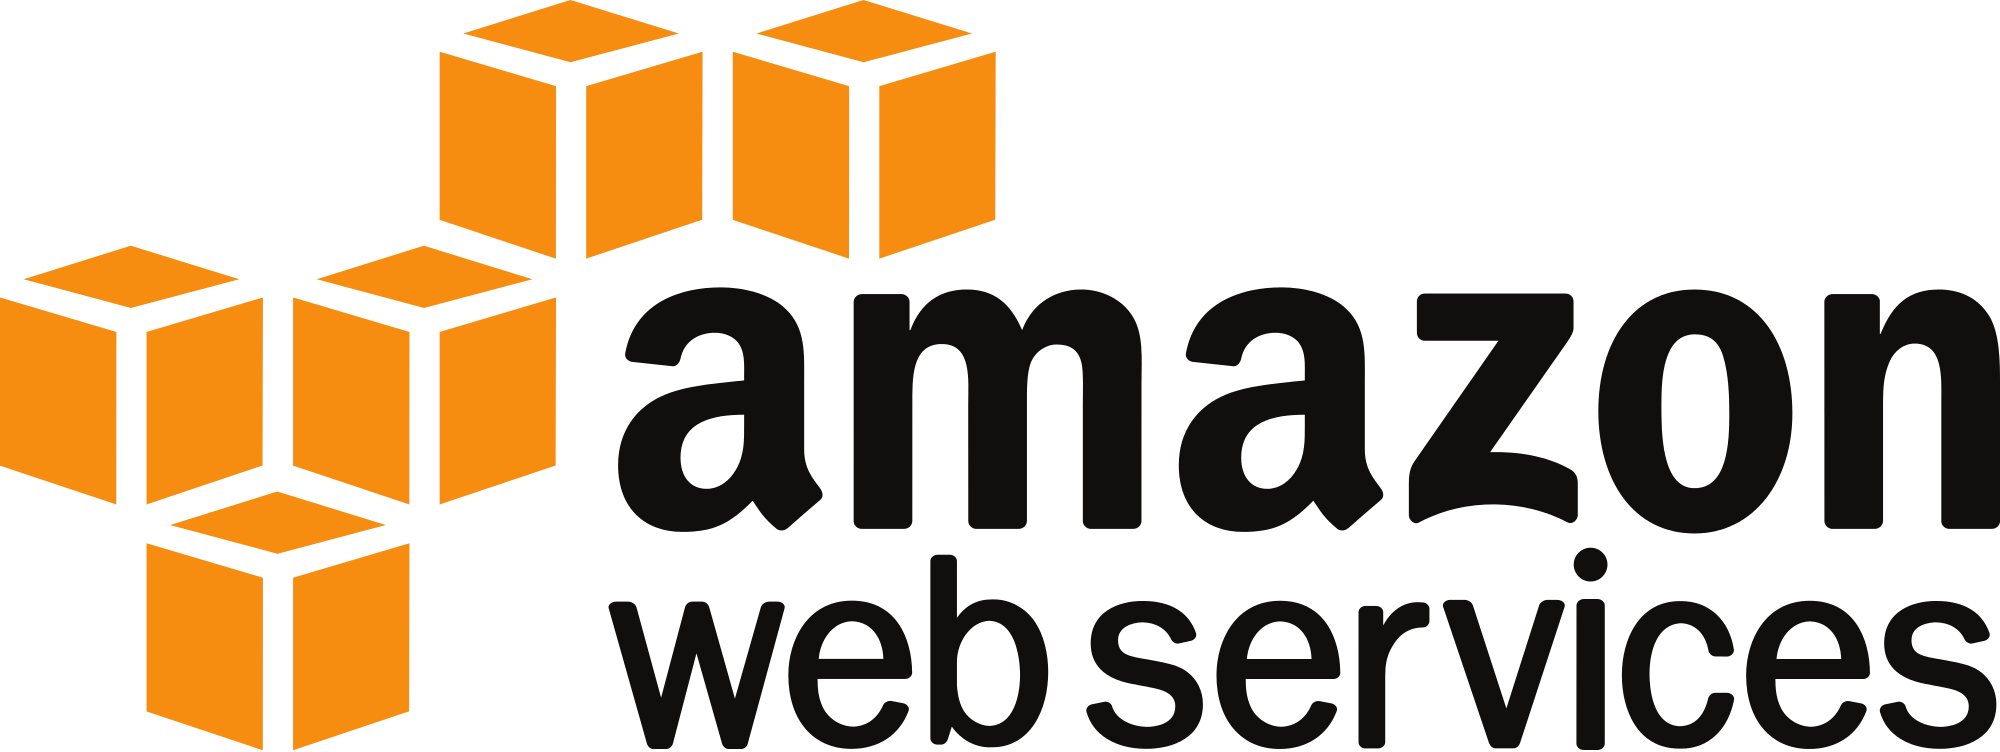 PrinterOn third party cloud printing with amazon web services